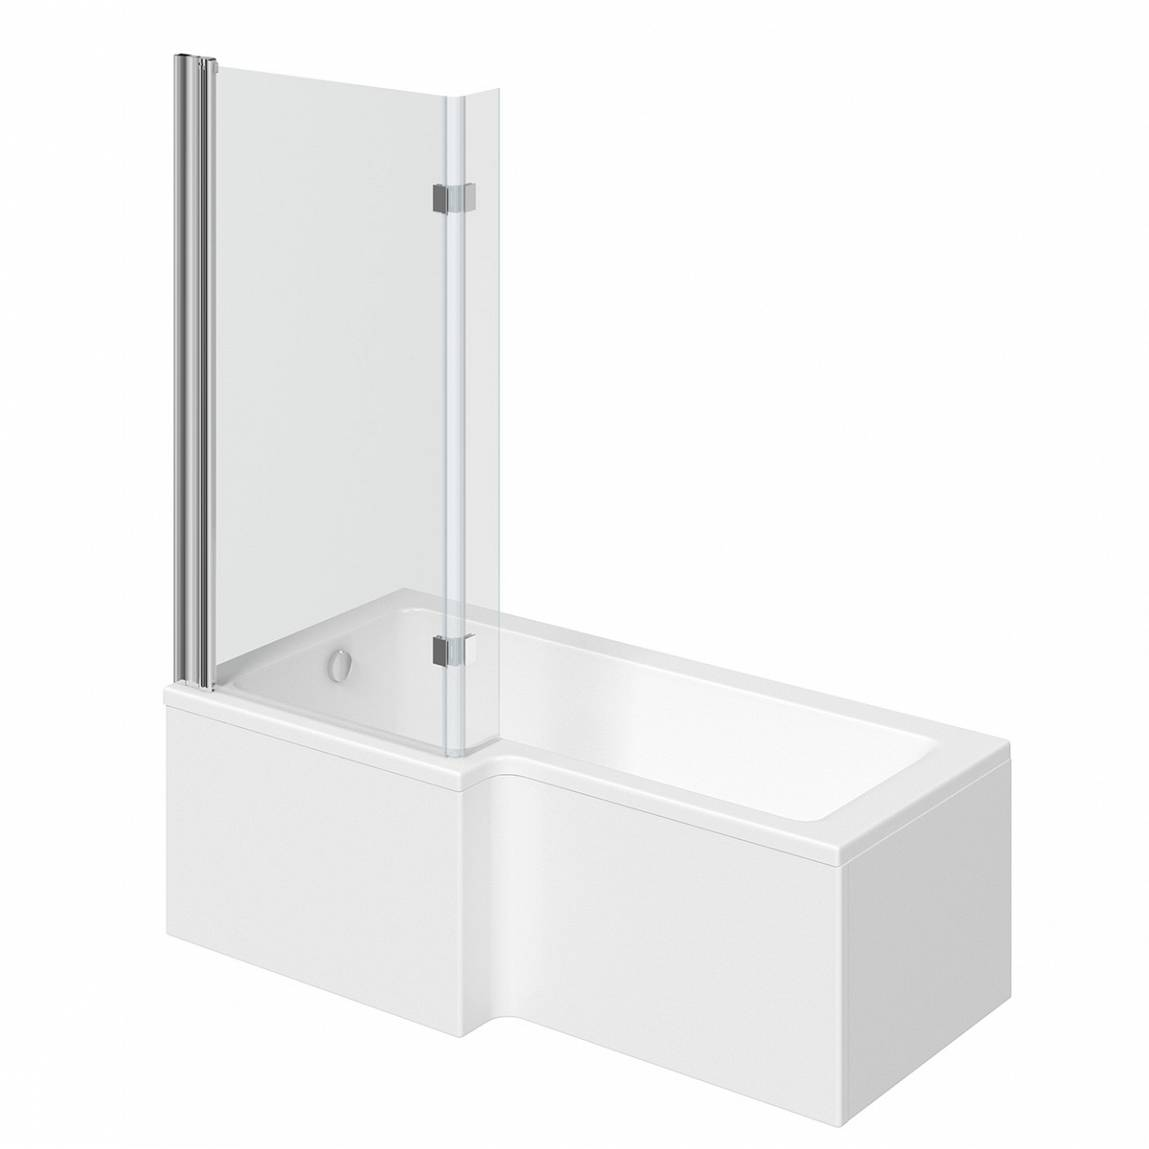 Image of Boston Shower Bath 1500 x 850 LH with 8mm Hinged Screen